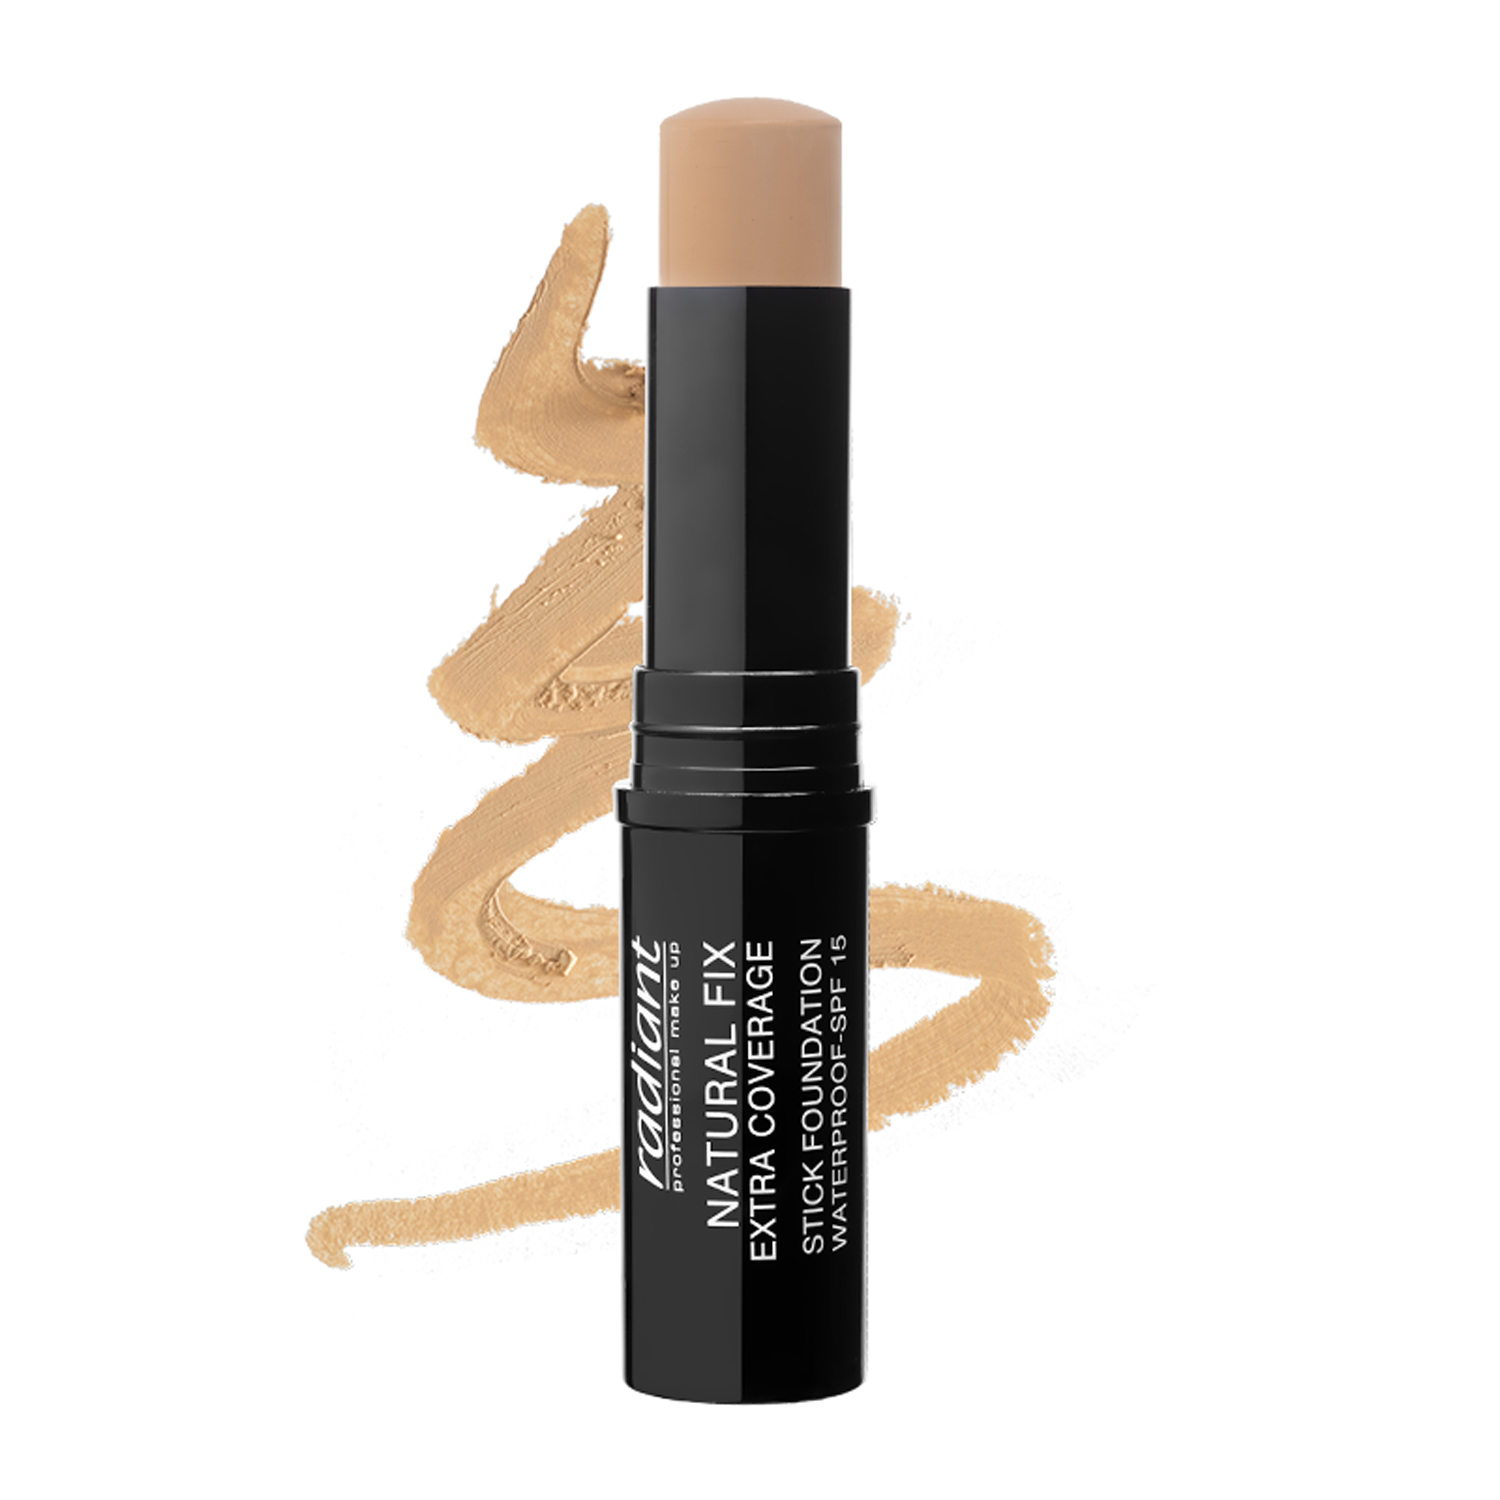 NATURAL FIX EXTRA COVERAGE STICK FOUNDATION  WATERPROOF SPF 15 (01 LATTE)